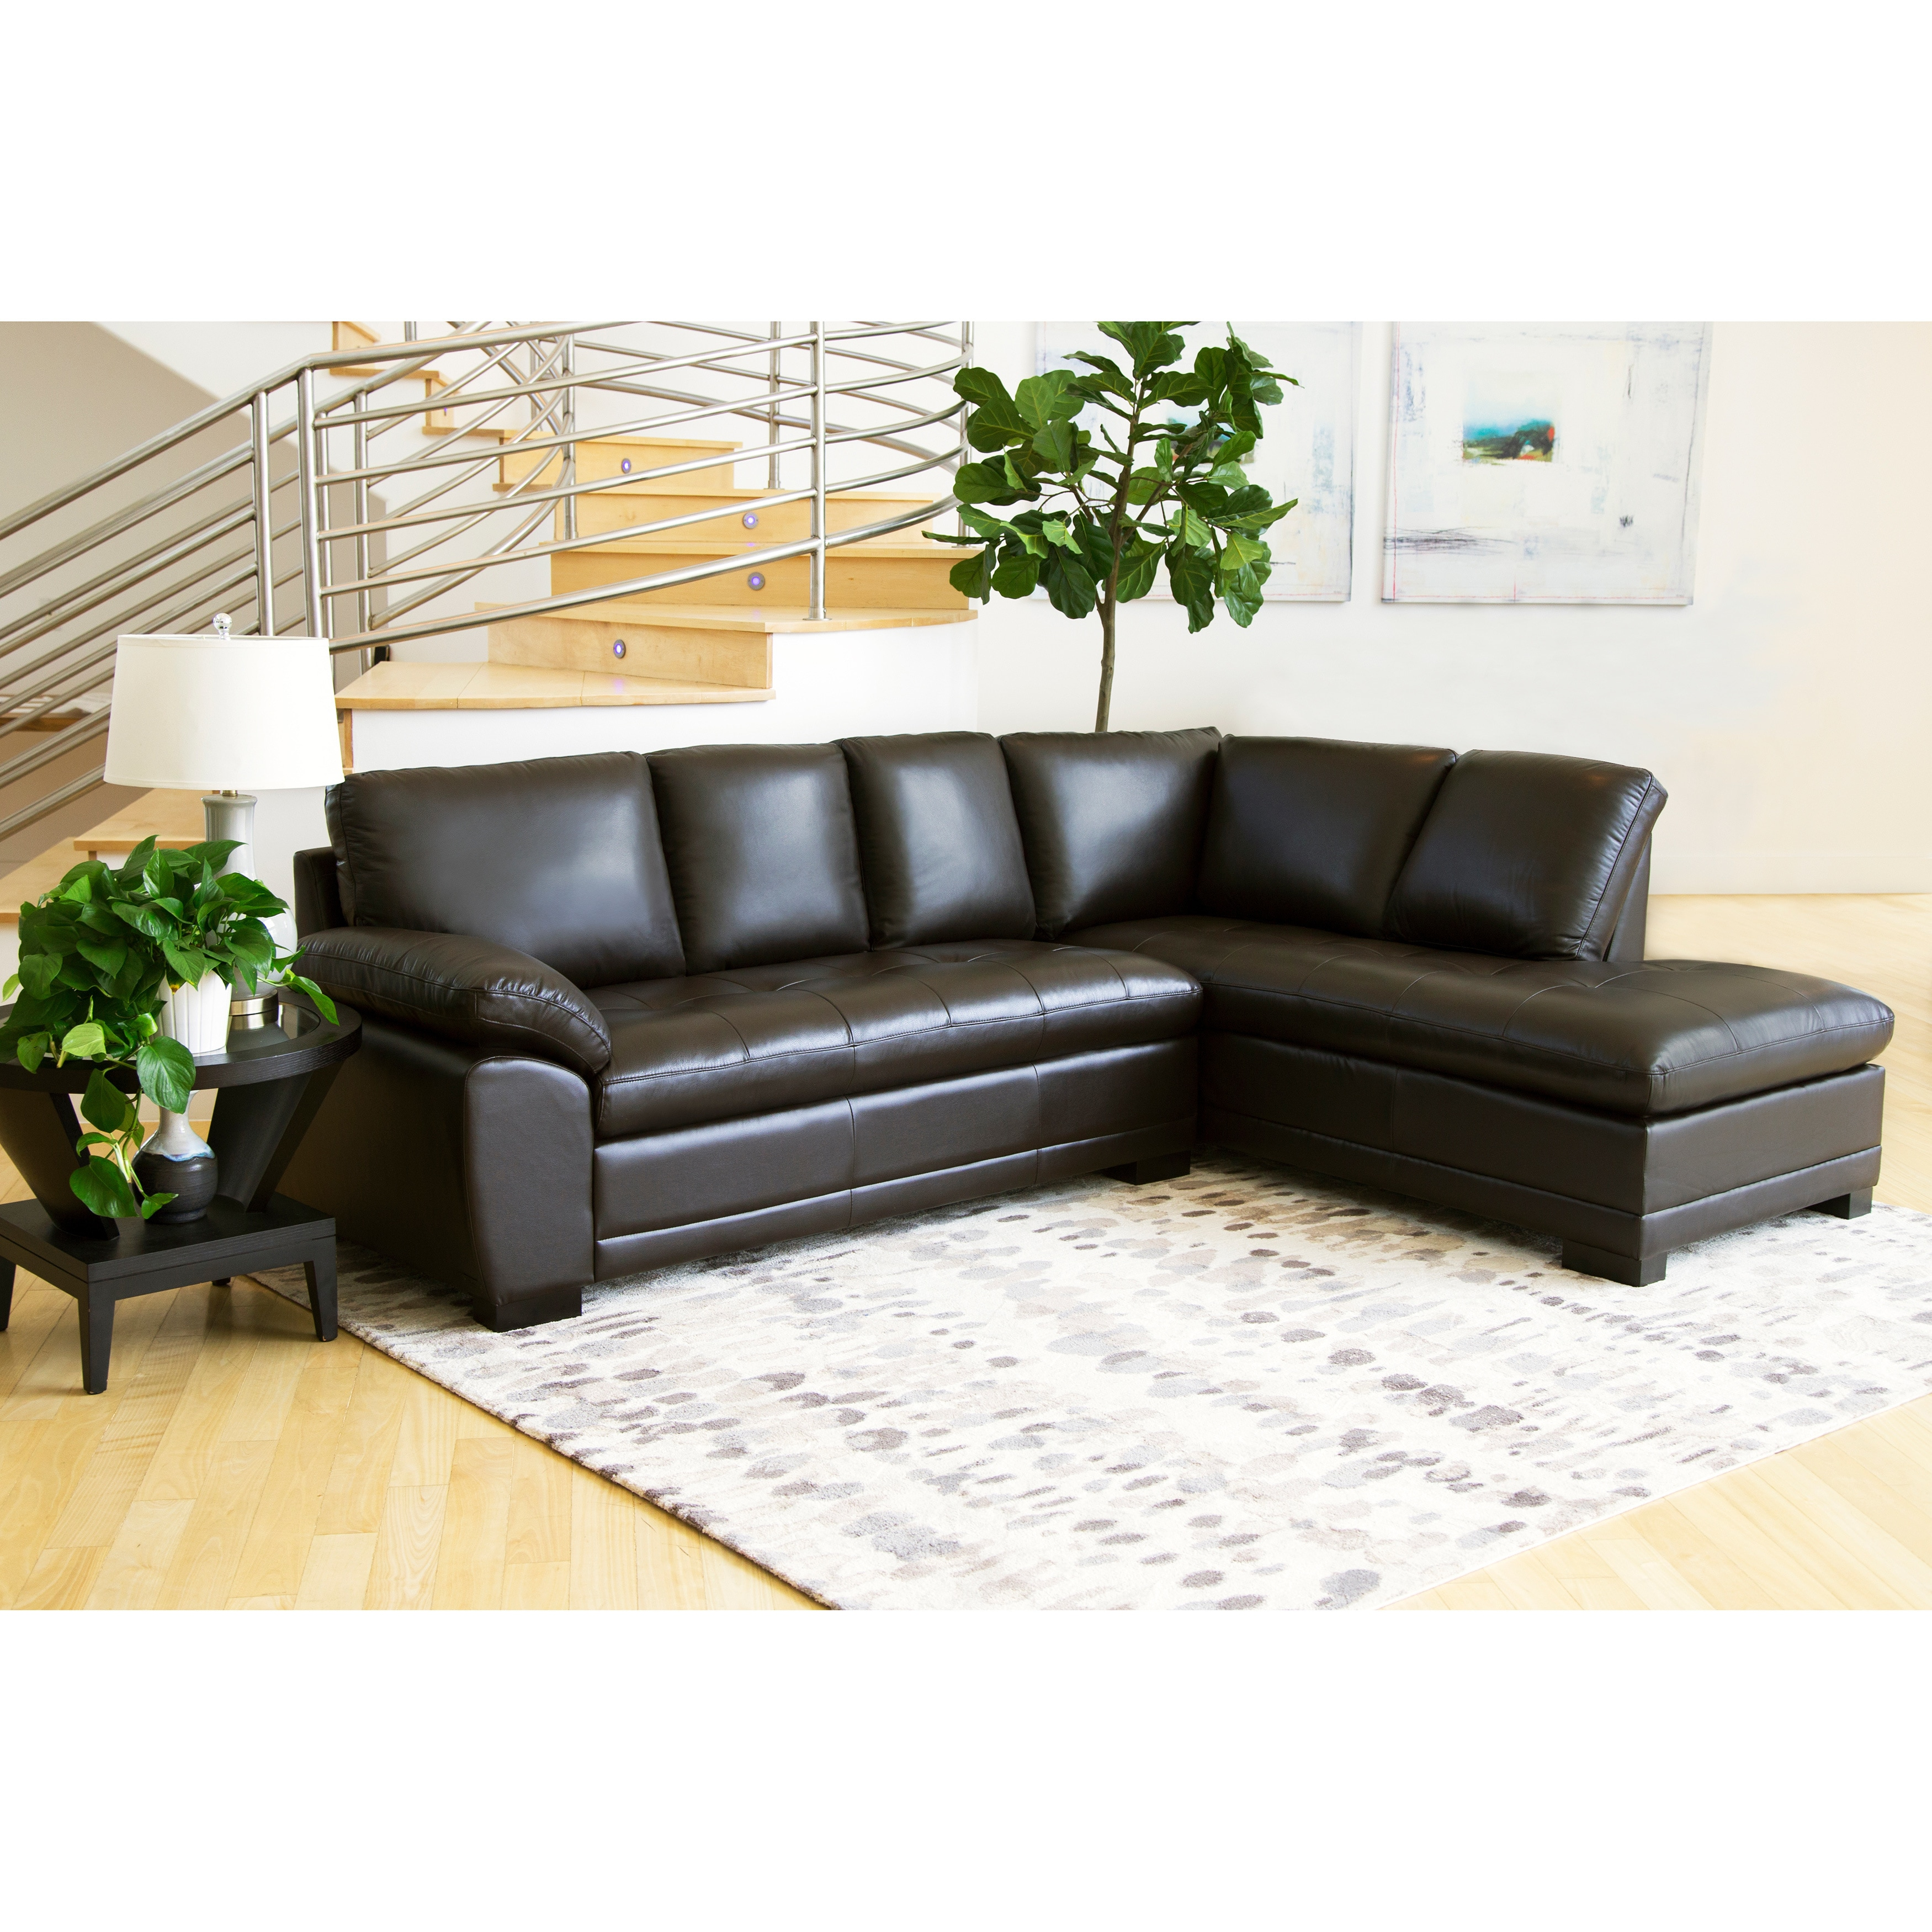 Charmant Abbyson Devonshire Leather Tufted Sectional